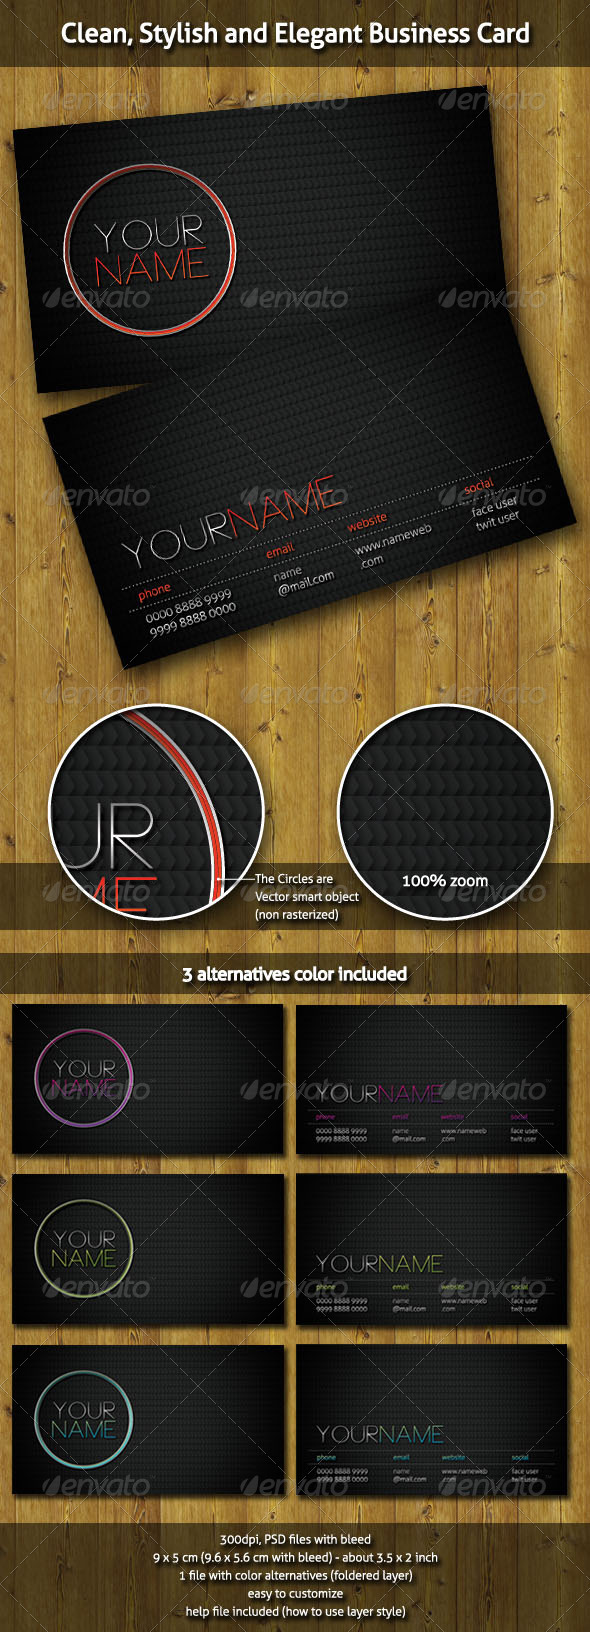 Clean, Stylish and Elegant Business Card - Business Cards Print Templates